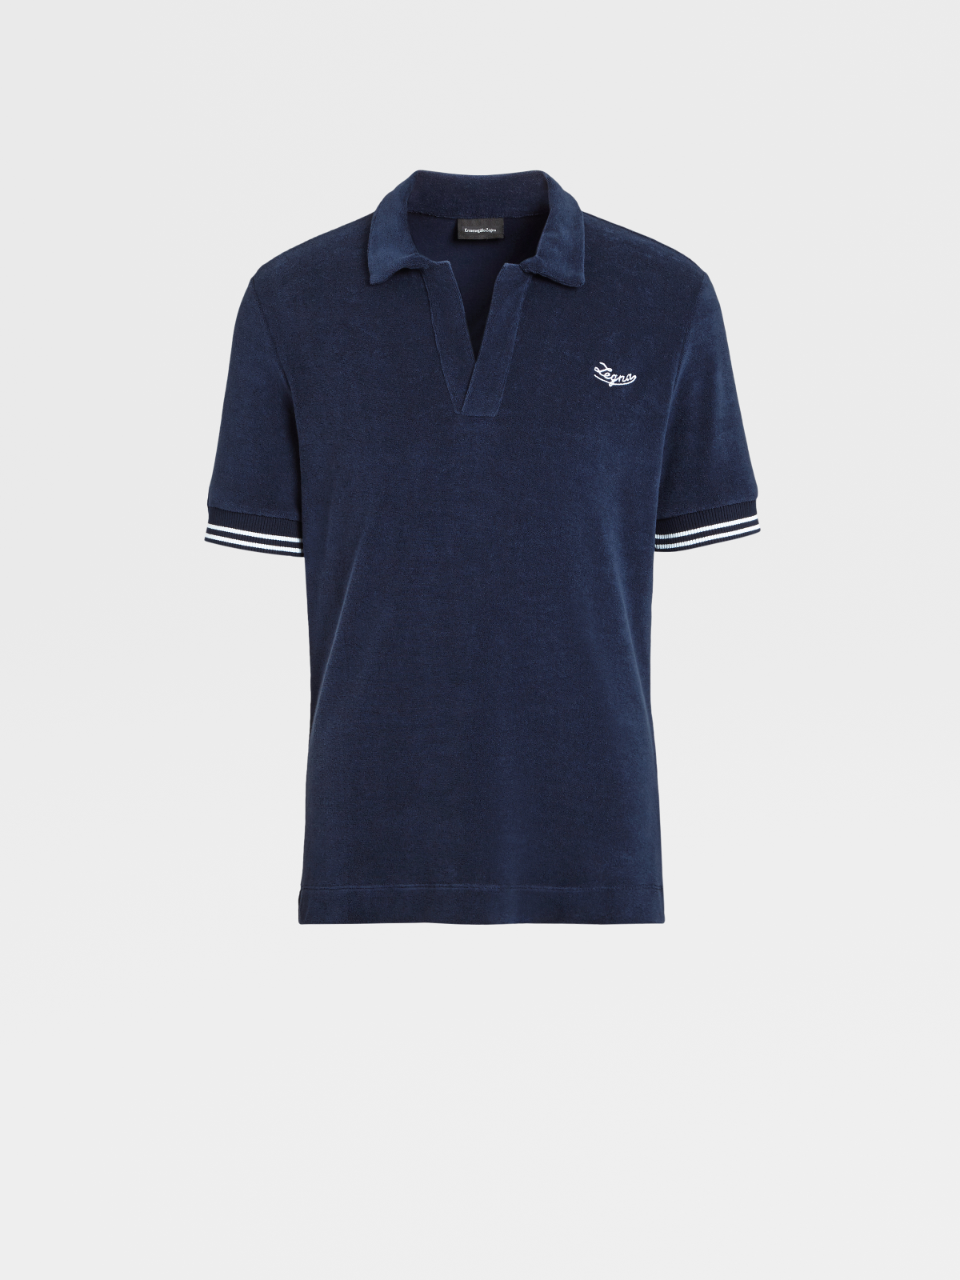 Towelling Cotton Polo